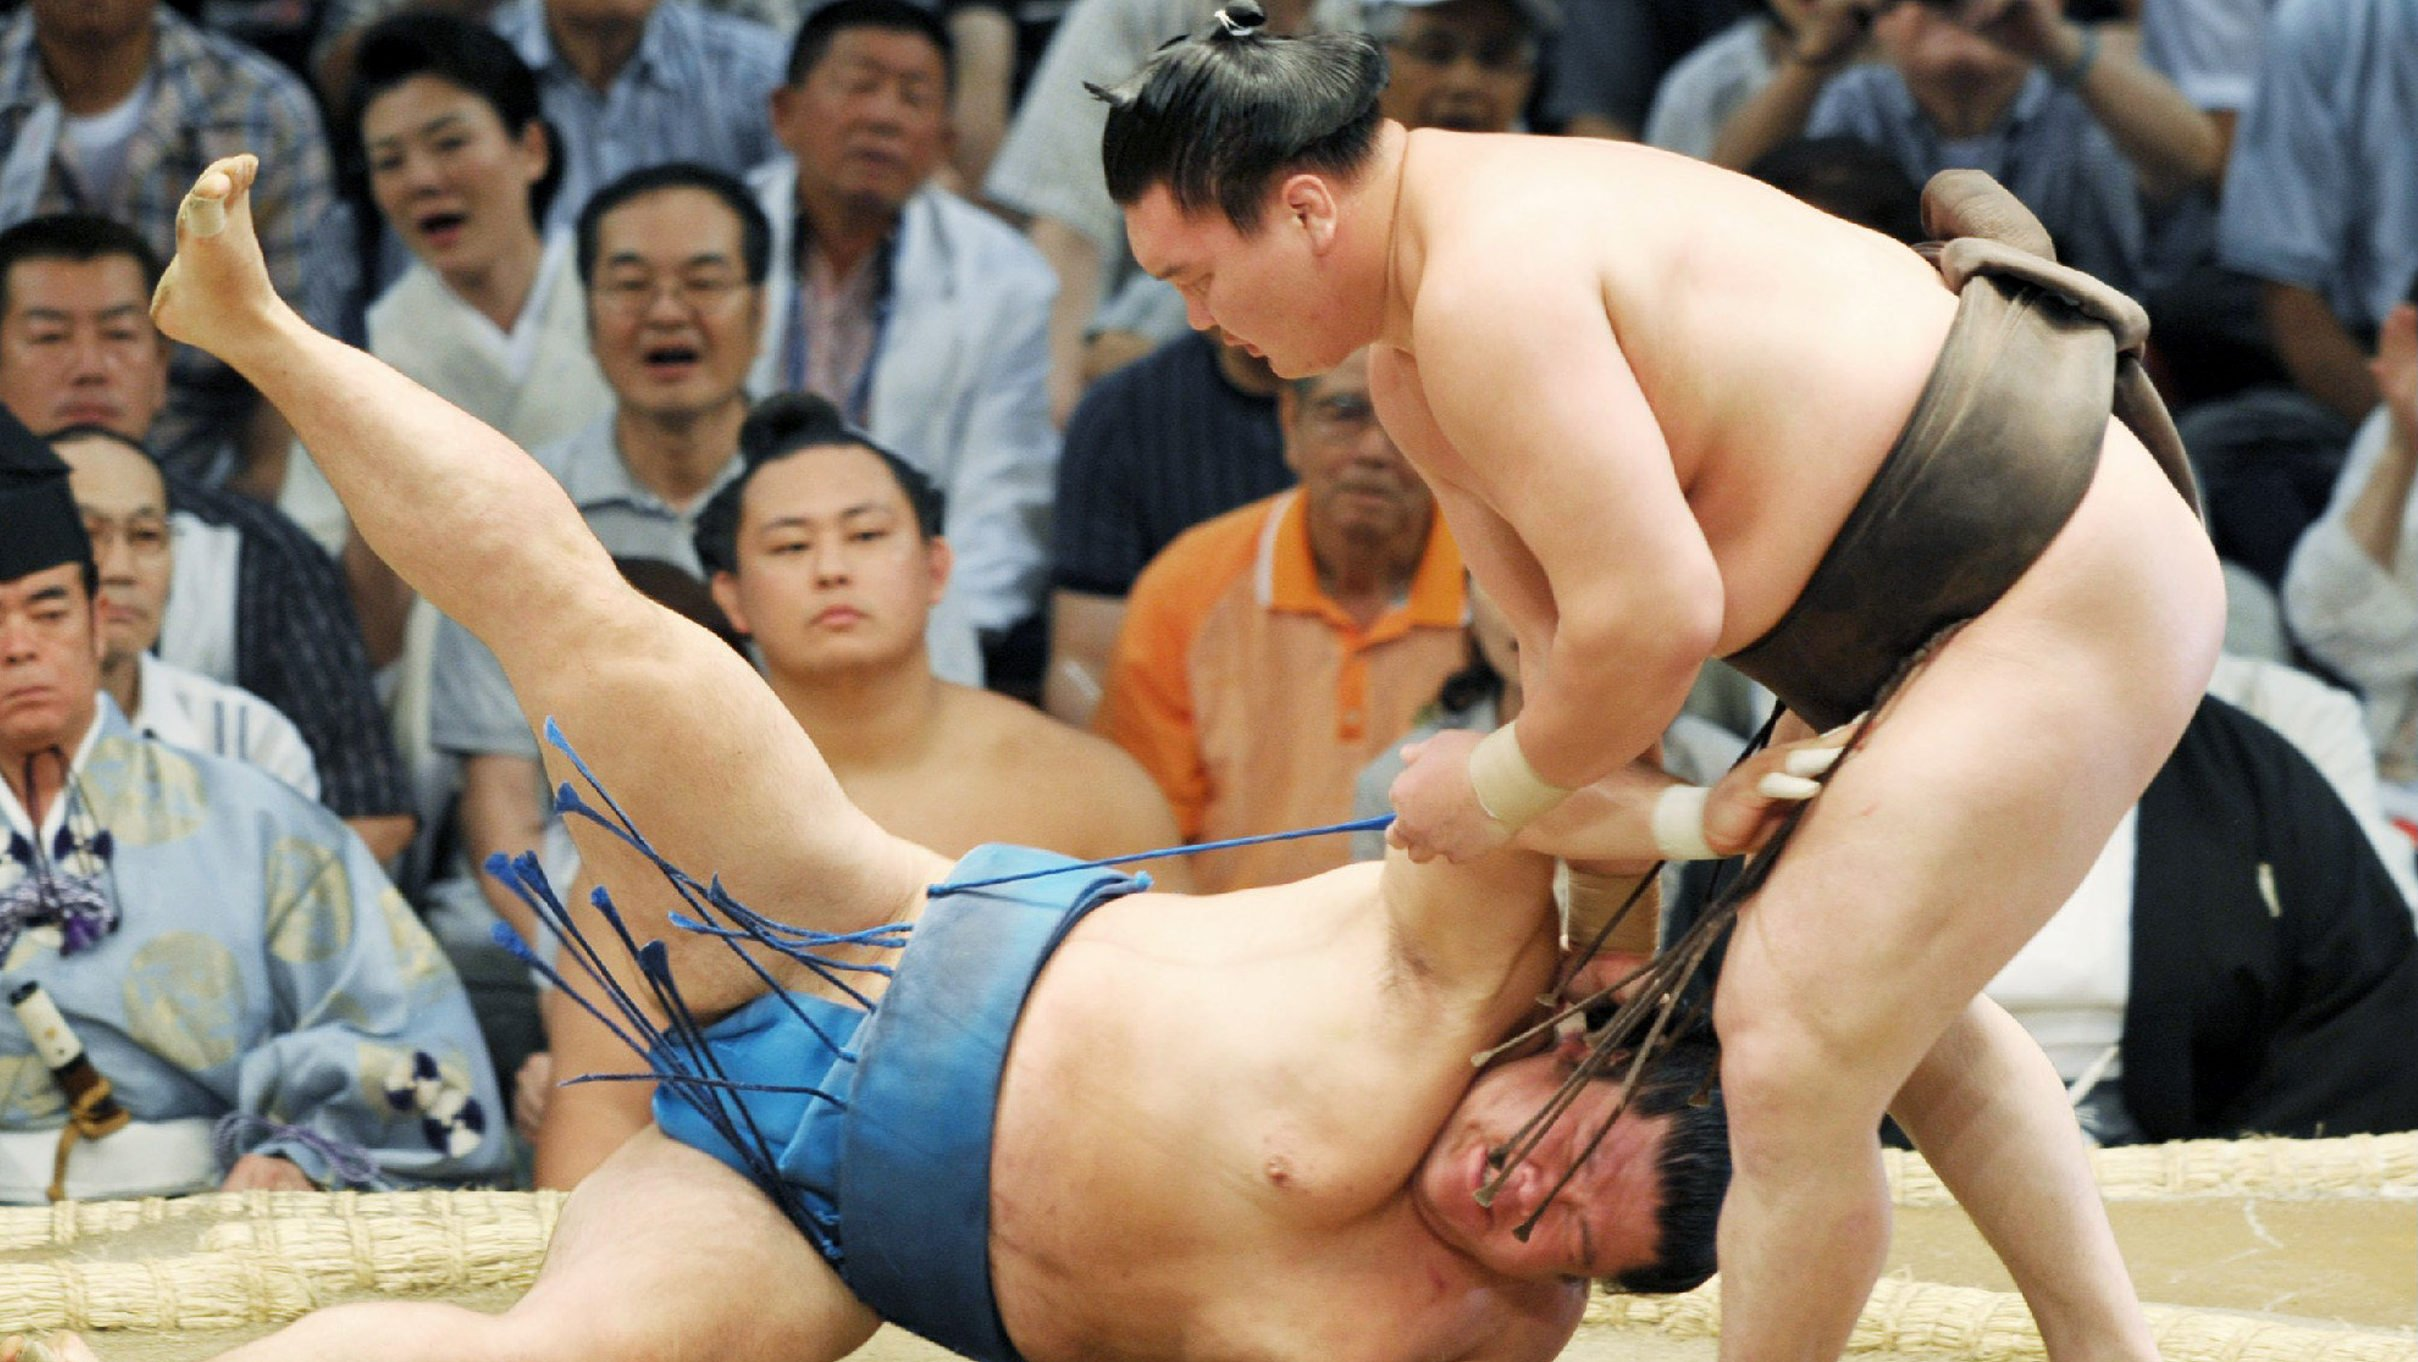 Why do sumo wrestlers compete half naked